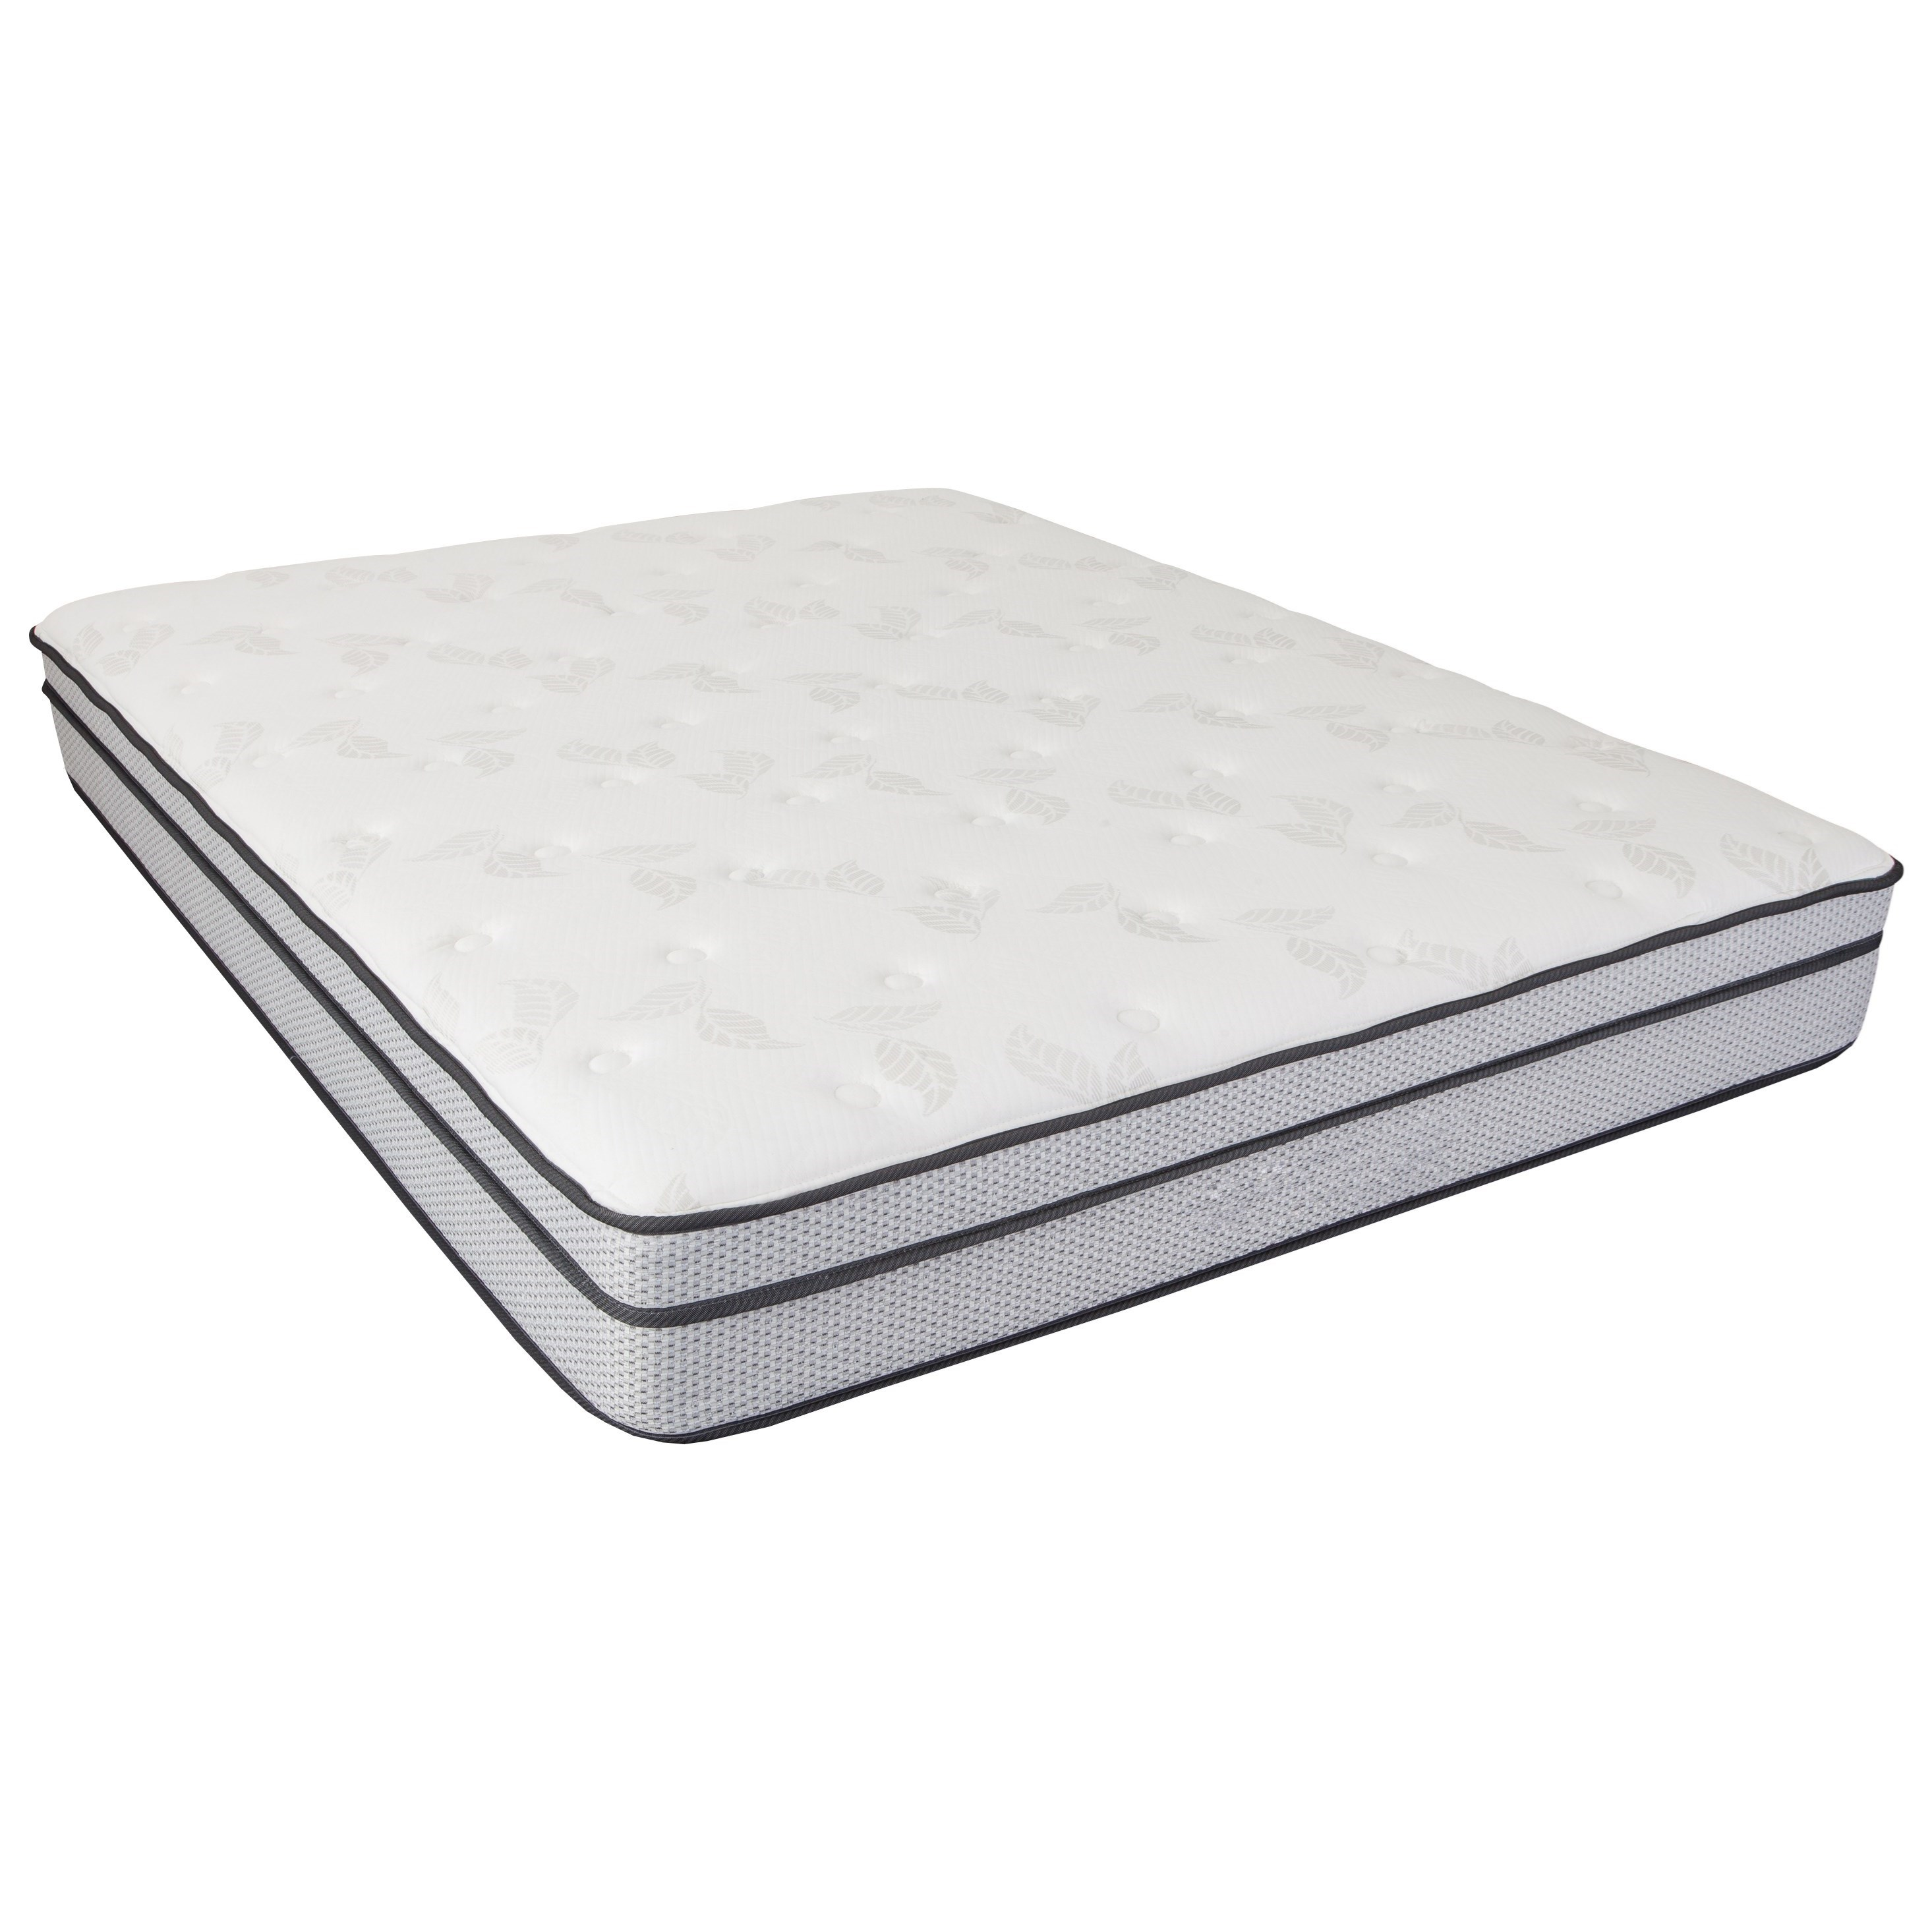 Select Fabric Closeout Cal King Innerspring Mattress by Southerland Bedding Co. at Wilcox Furniture